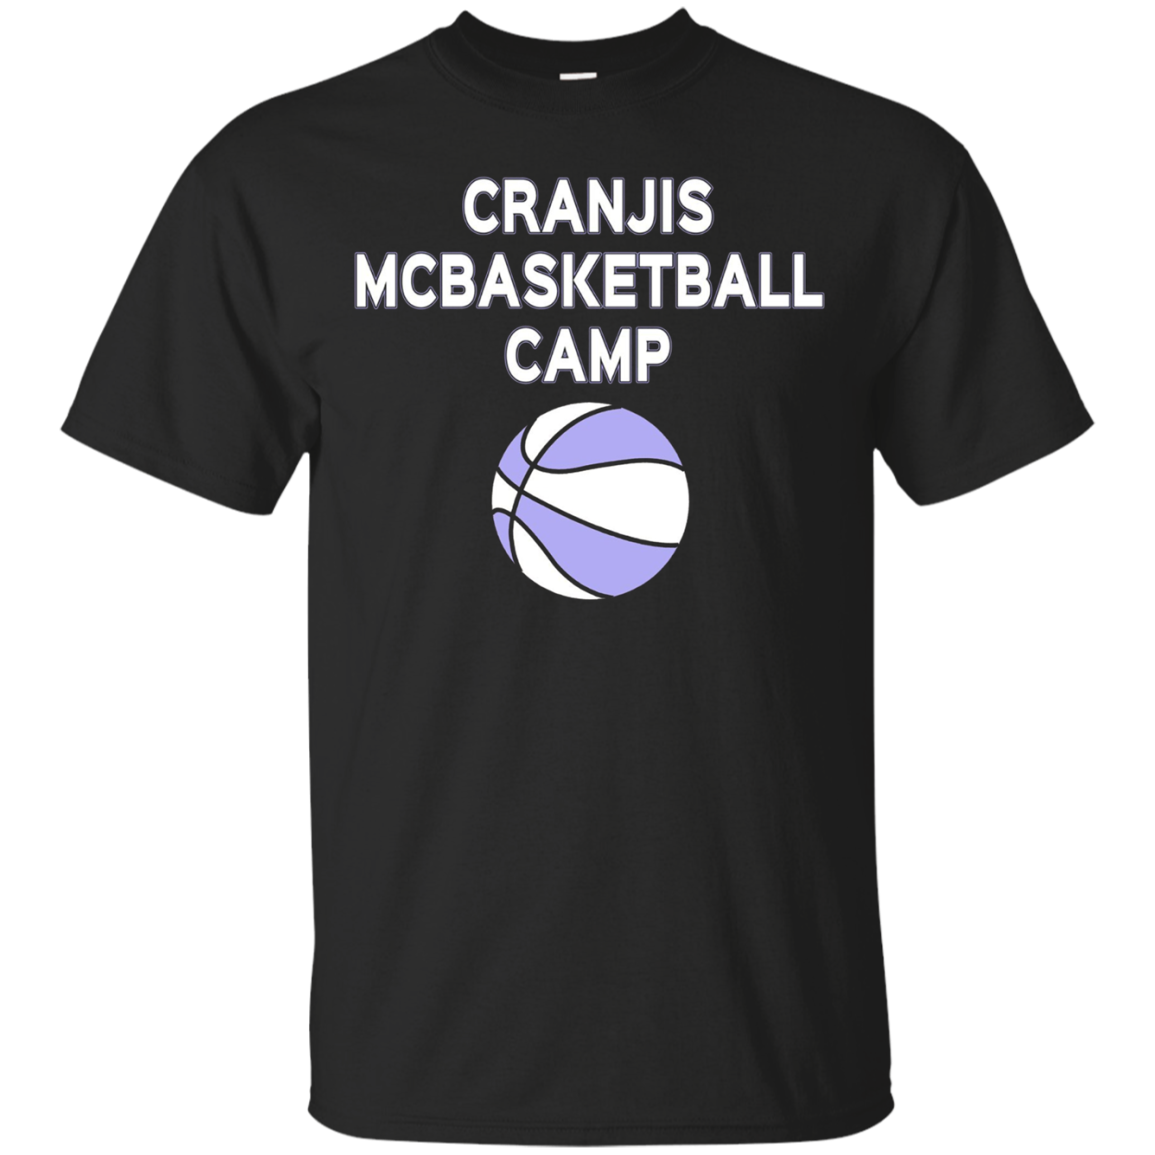 Cranjis McBasketball Camp T-shirt